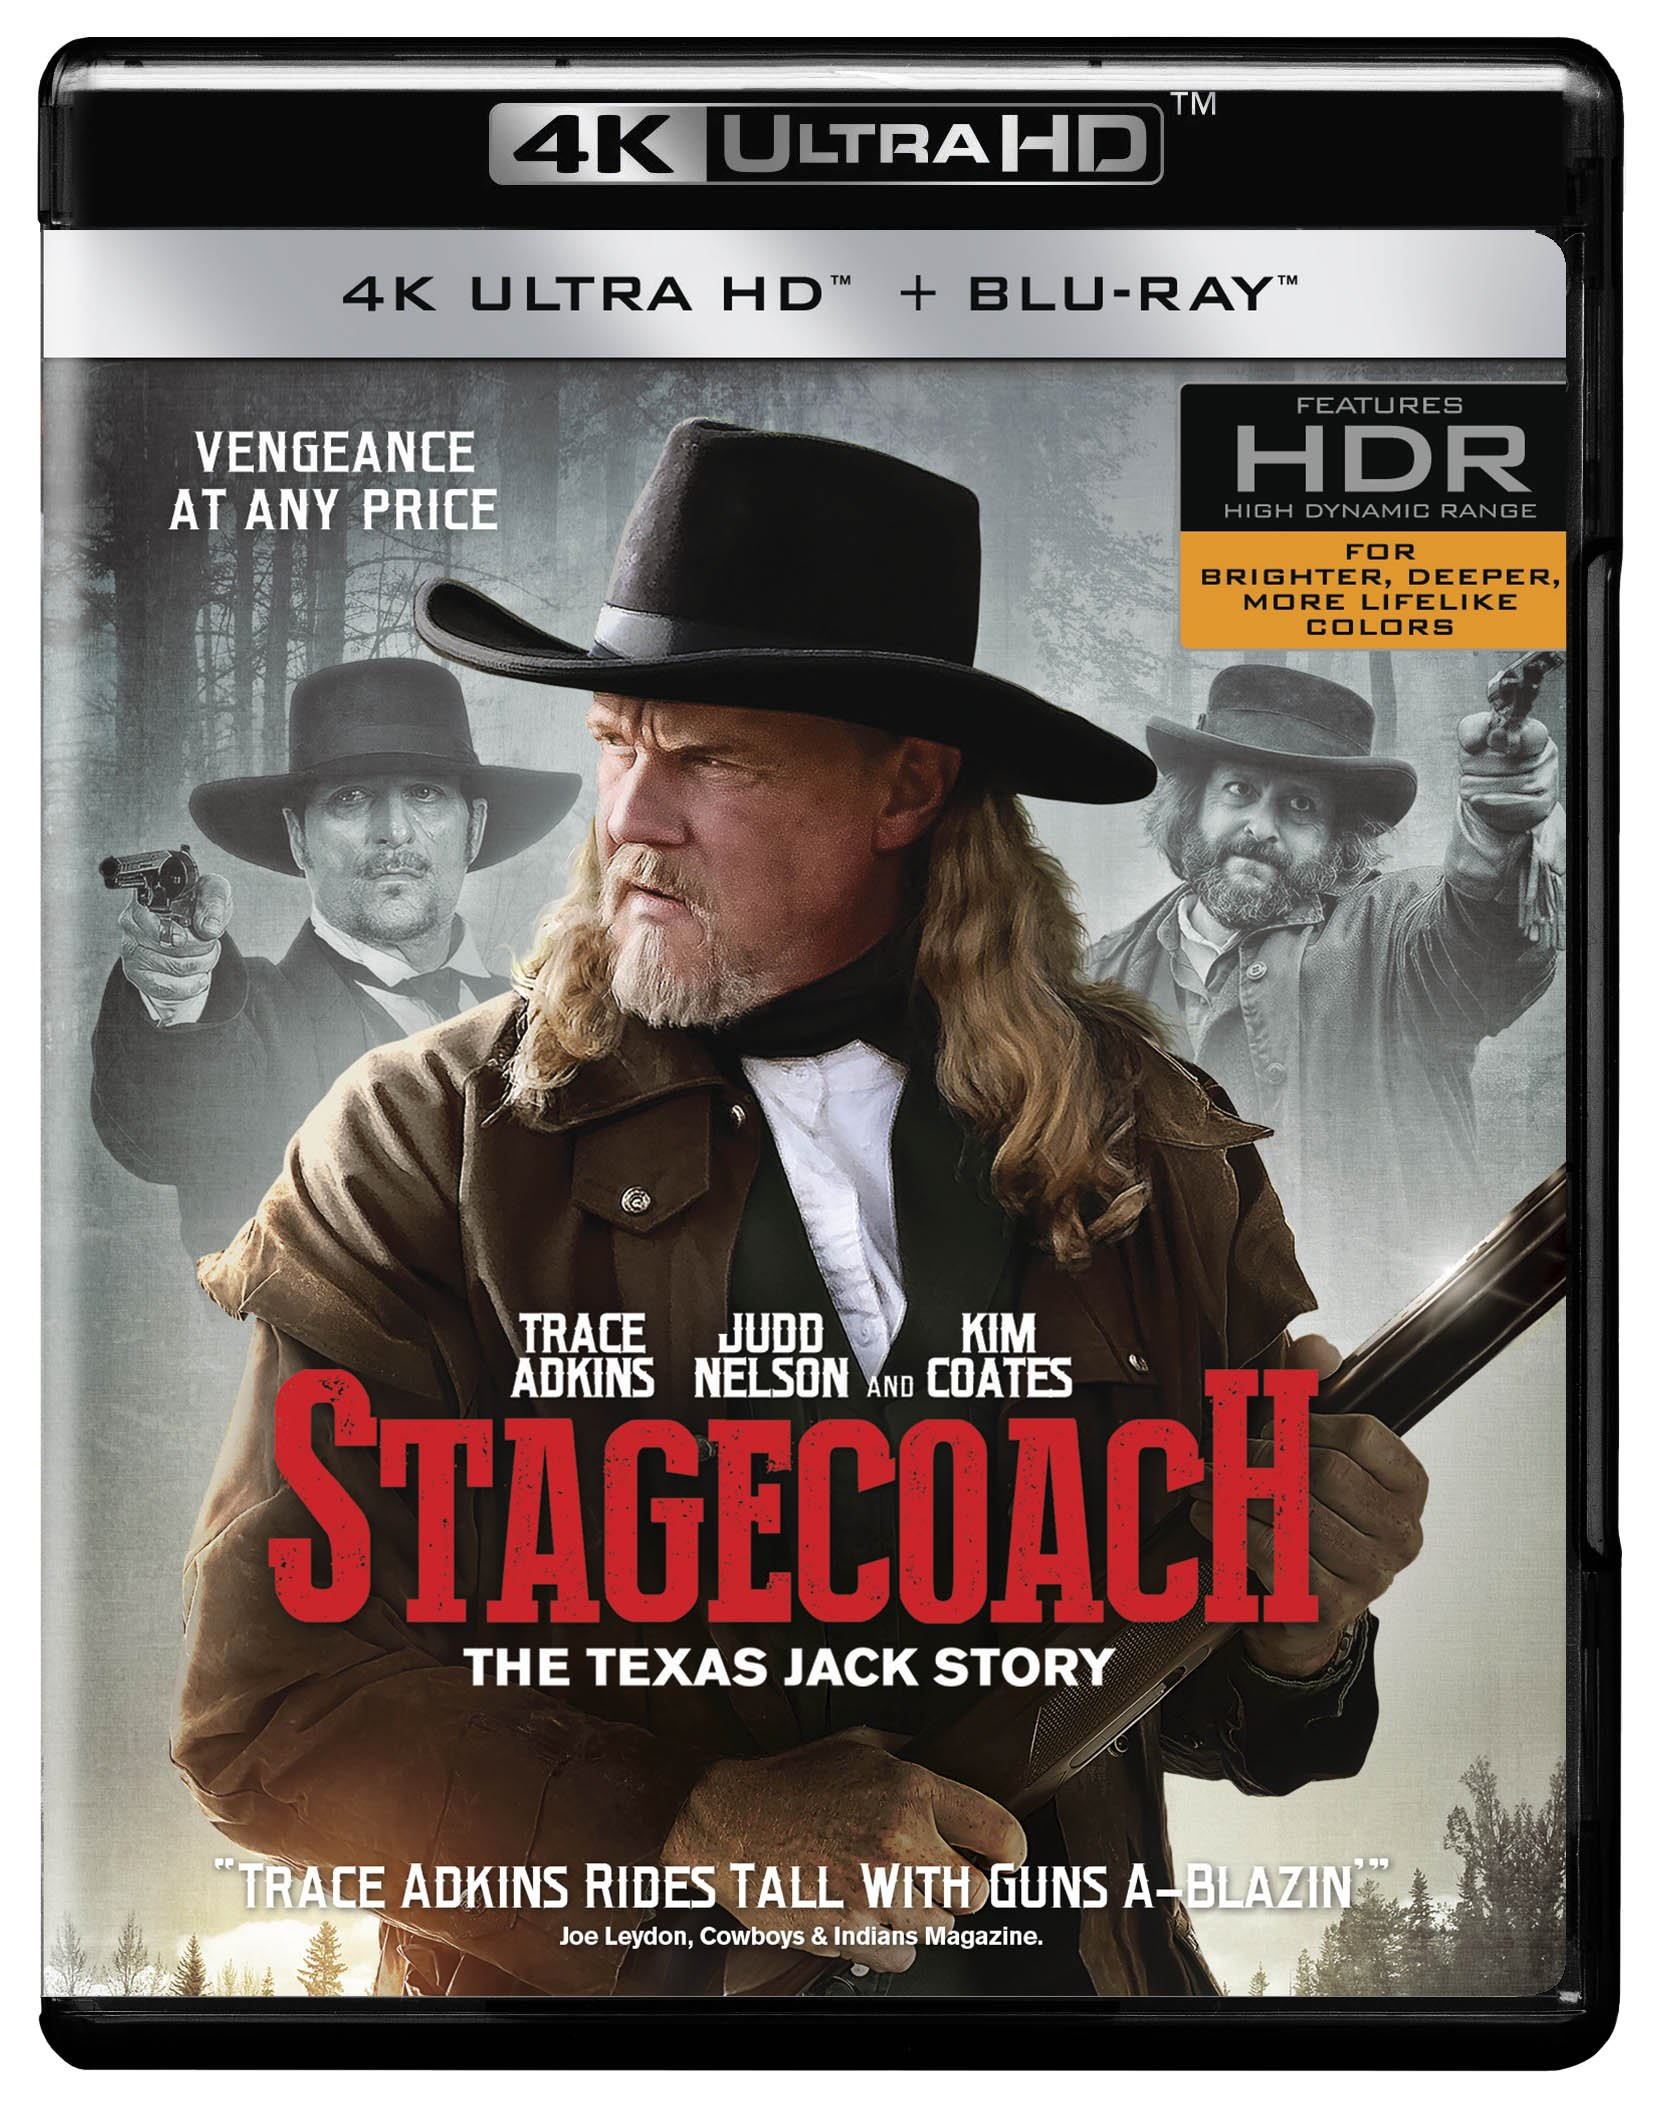 Blu-ray 3D : Stagecoach: The Texas Jack Story (With Blu-Ray, 4K Mastering, Widescreen, Dubbed, 2 Pack)